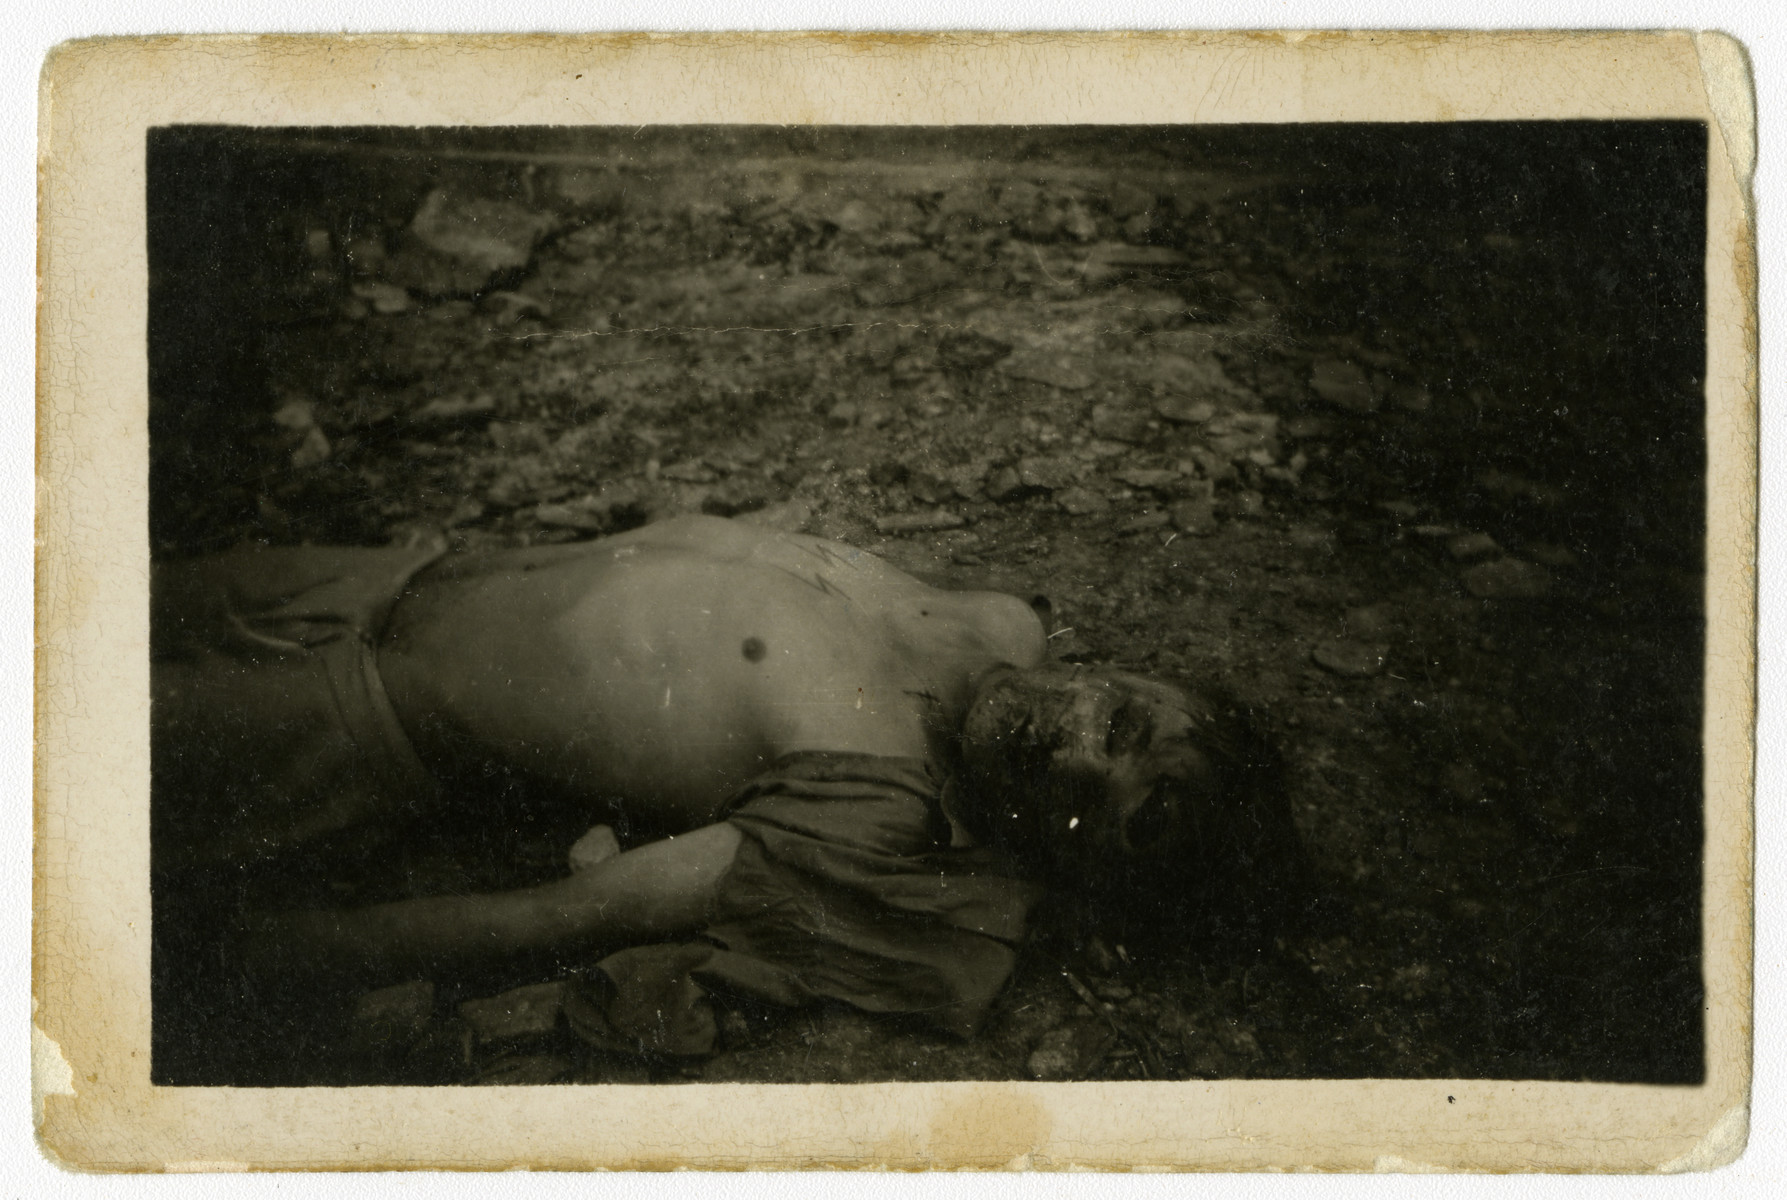 Close-up of the corpse of a former SS guard; his shirt has been torn off exposing his SS tattoo.